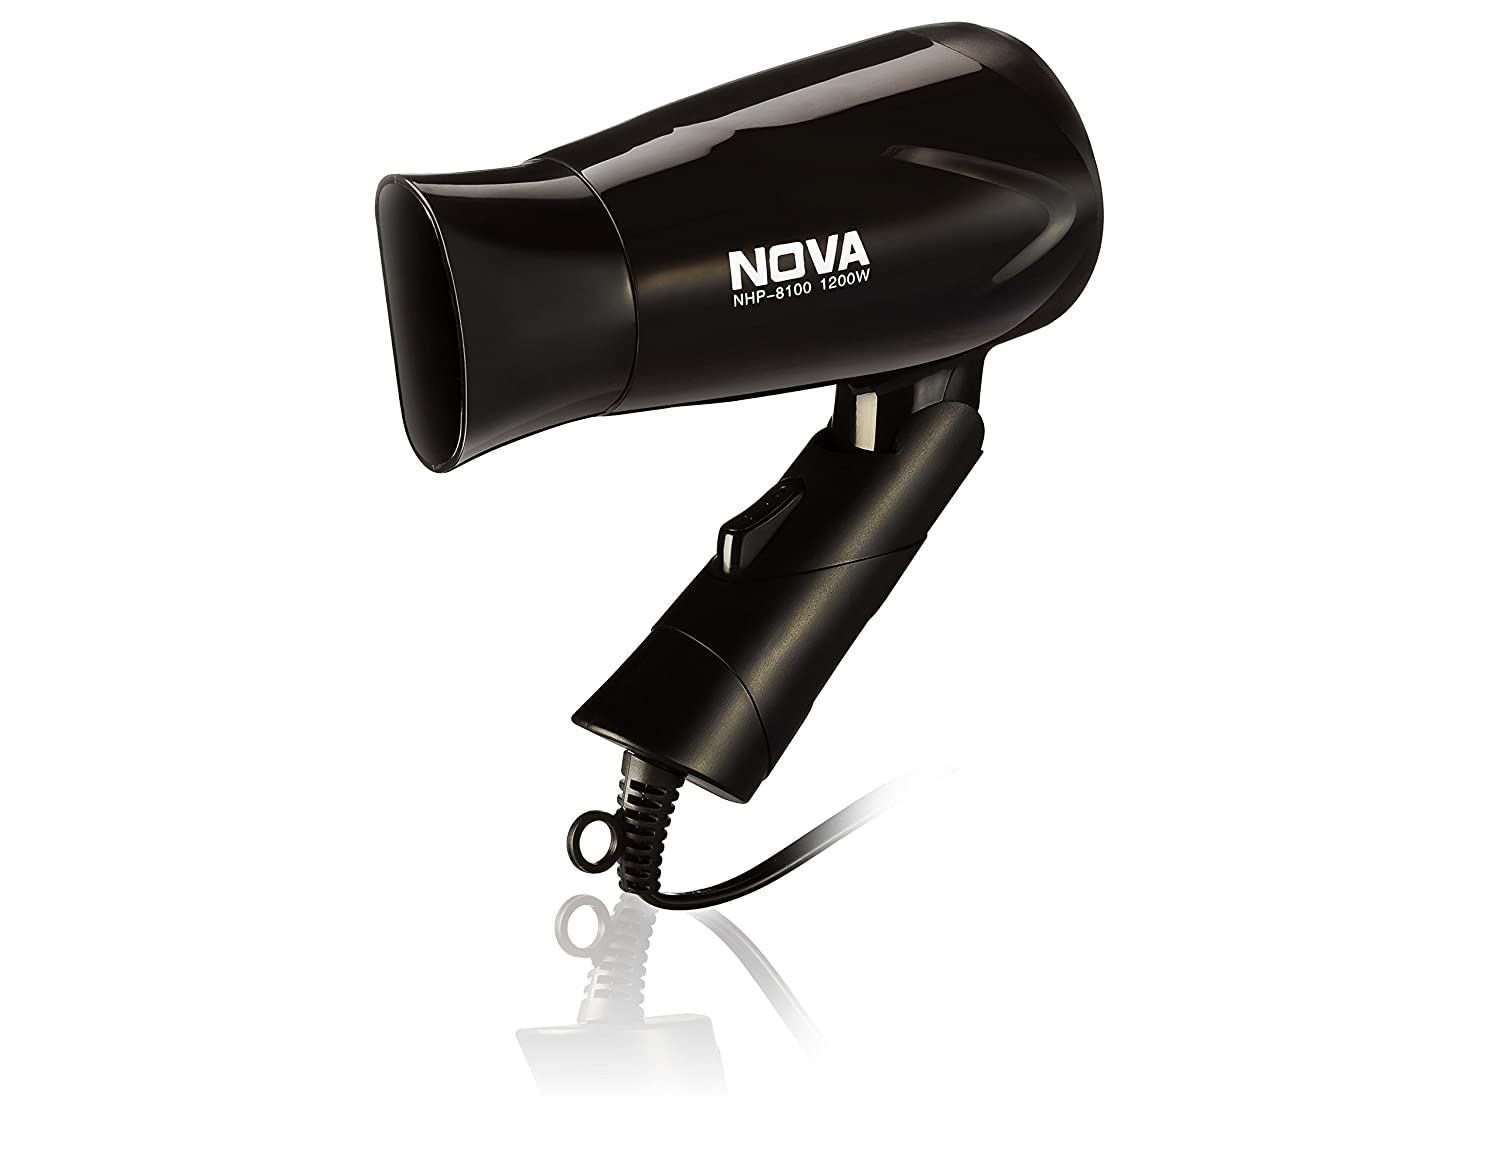 Nova NHP 8100 Silky Shine 1200 W Hot and Cold Foldable Hair Dryer (Black)   Amazon.in  Health   Personal Care fc4b9bd0c4